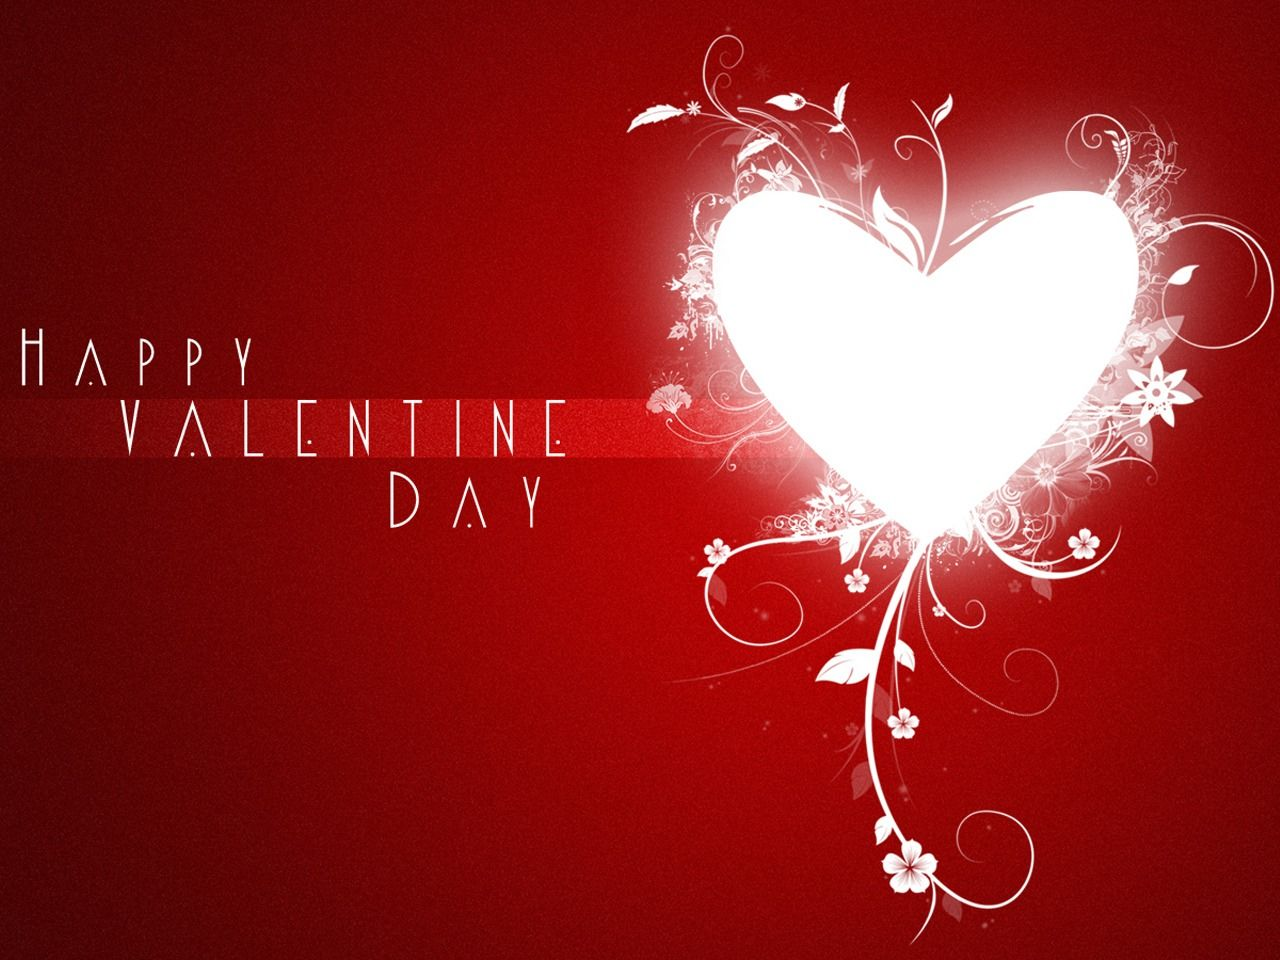 Happy Valentines Day Wallpapers 1280x960